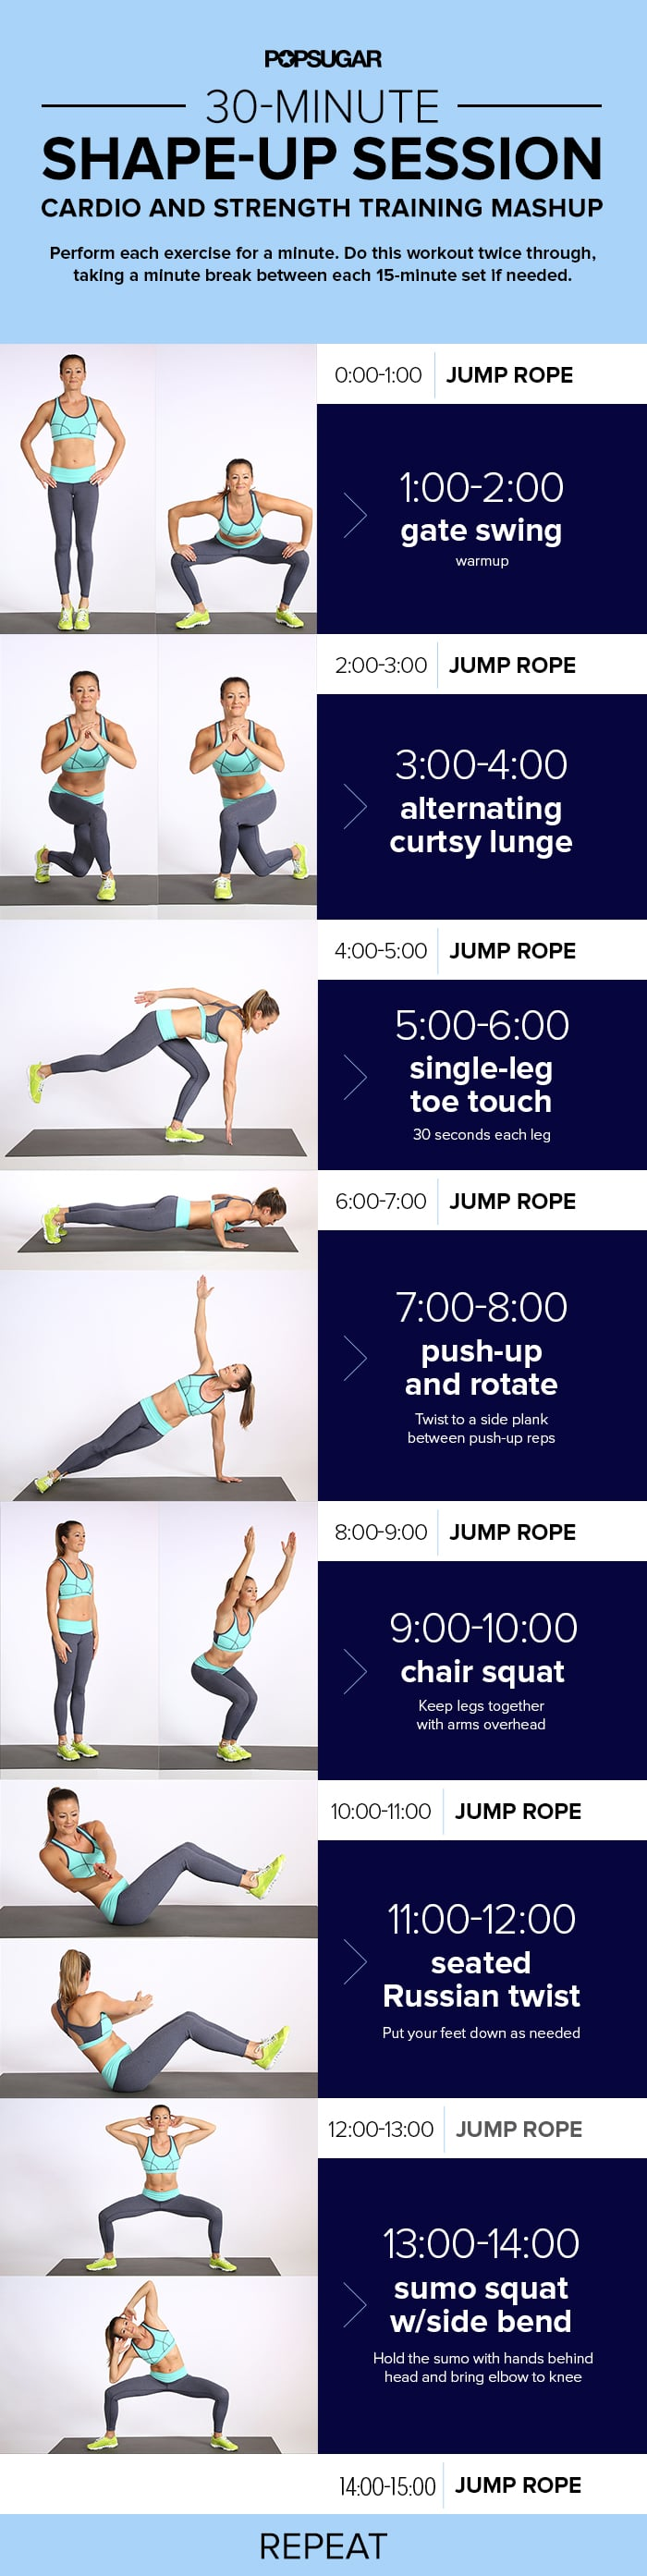 Printable Workout 30 Minutes Cardio And Strength Training